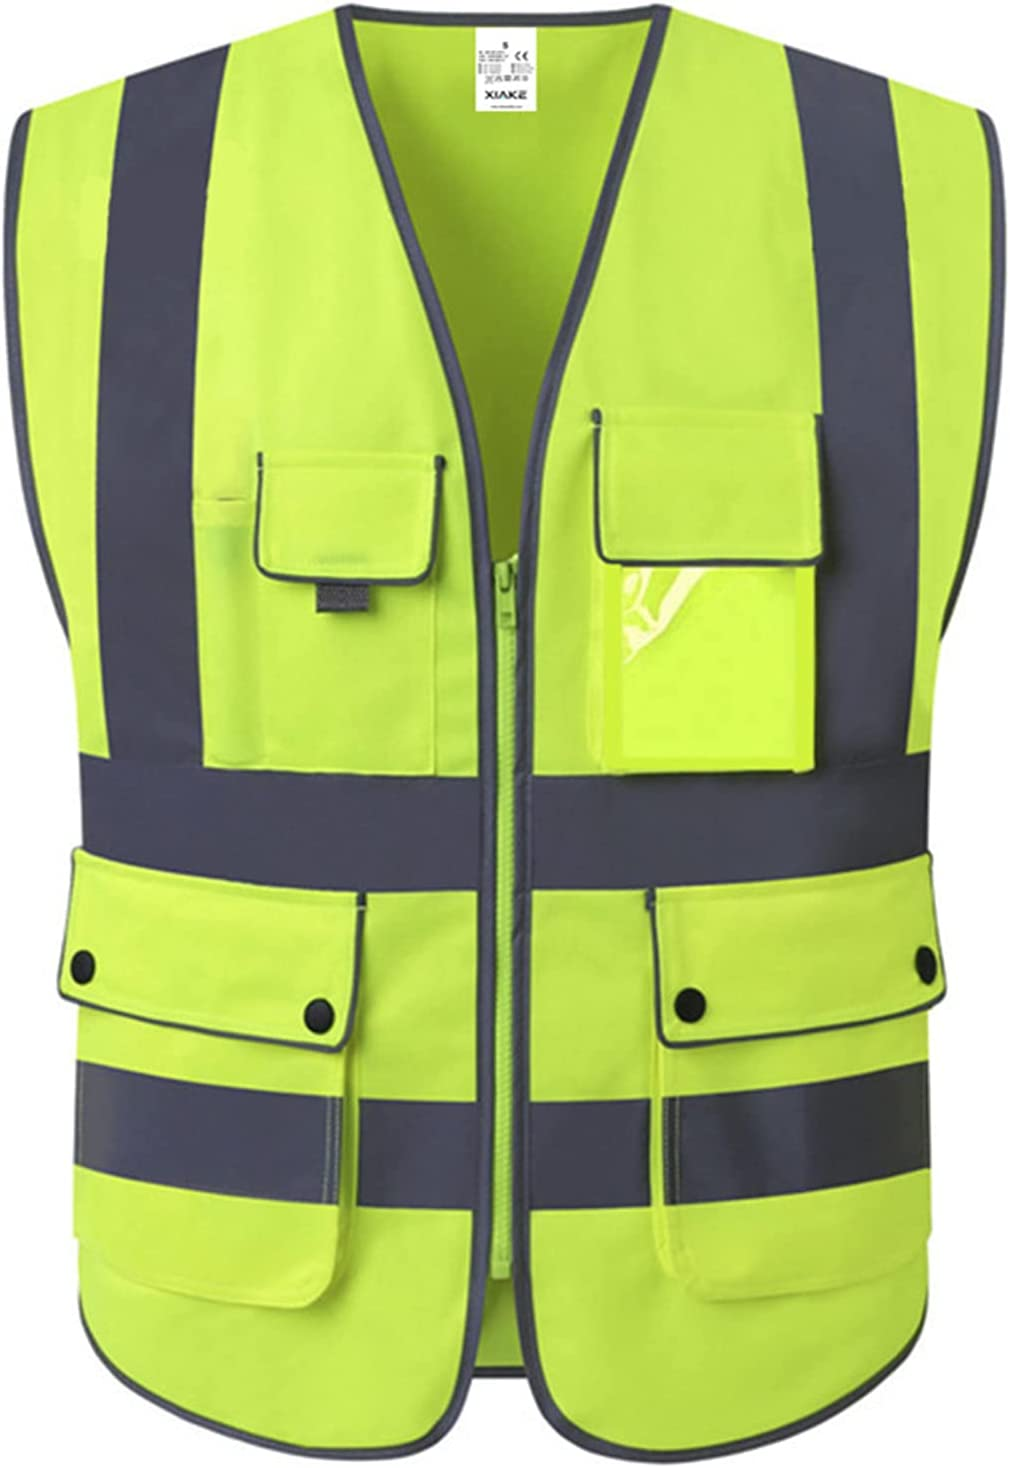 XIAKE Class 2 High Visibility Reflective Safety Vests with 8 Pockets and Zipper Front, Meets ANSI/ISEA Standards(Small, Yellow) - -